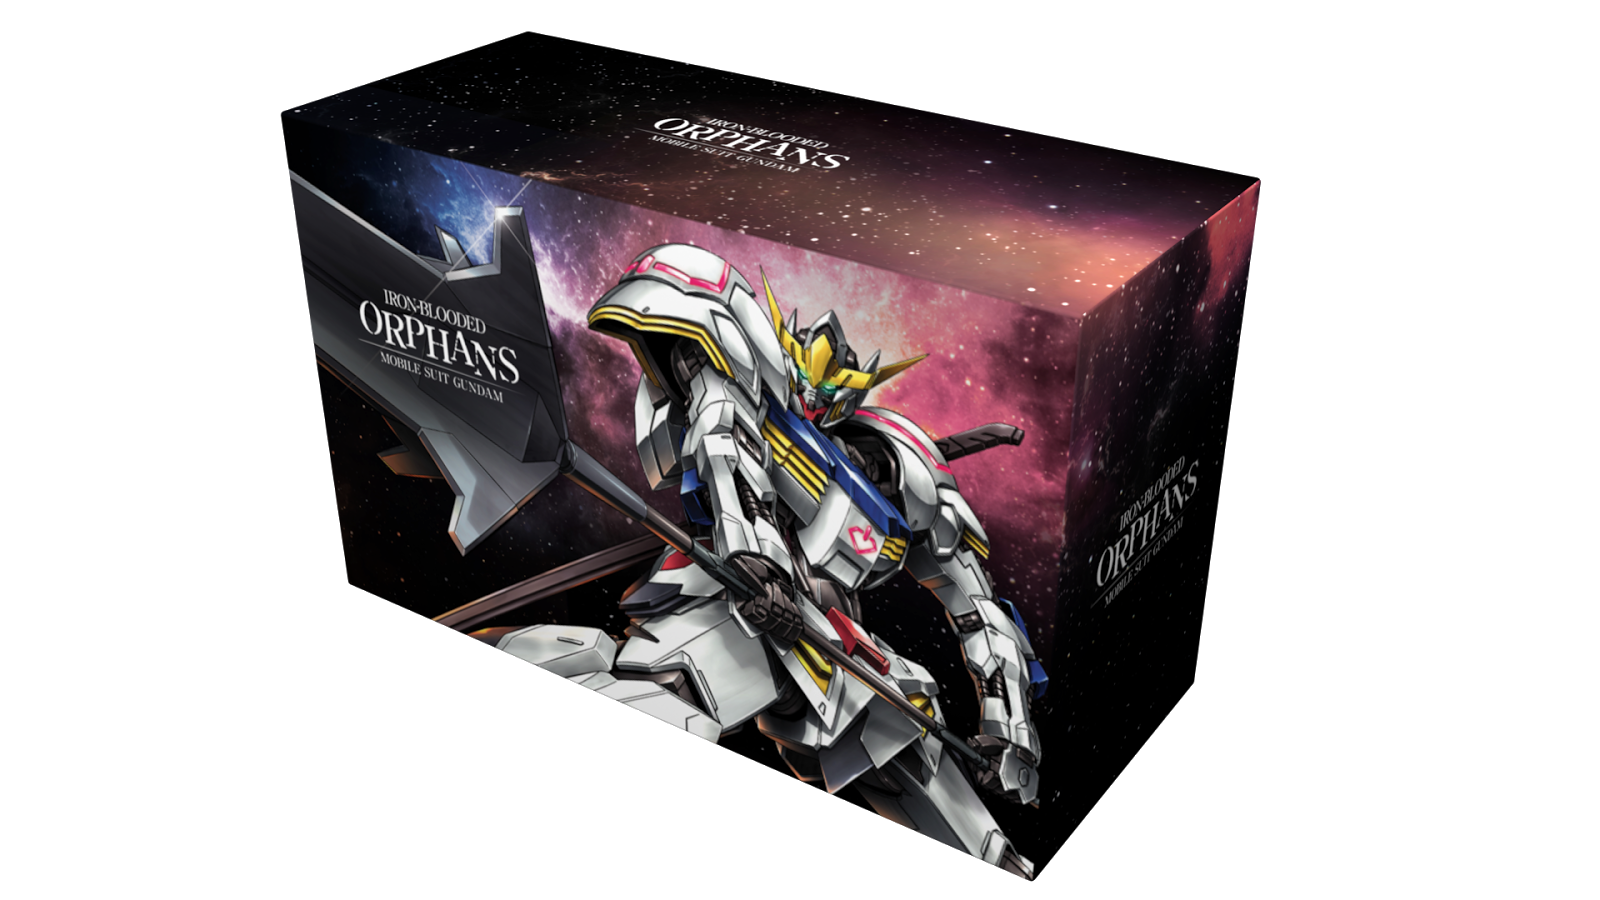 gundam iron blooded orphans season 2 blu ray release date